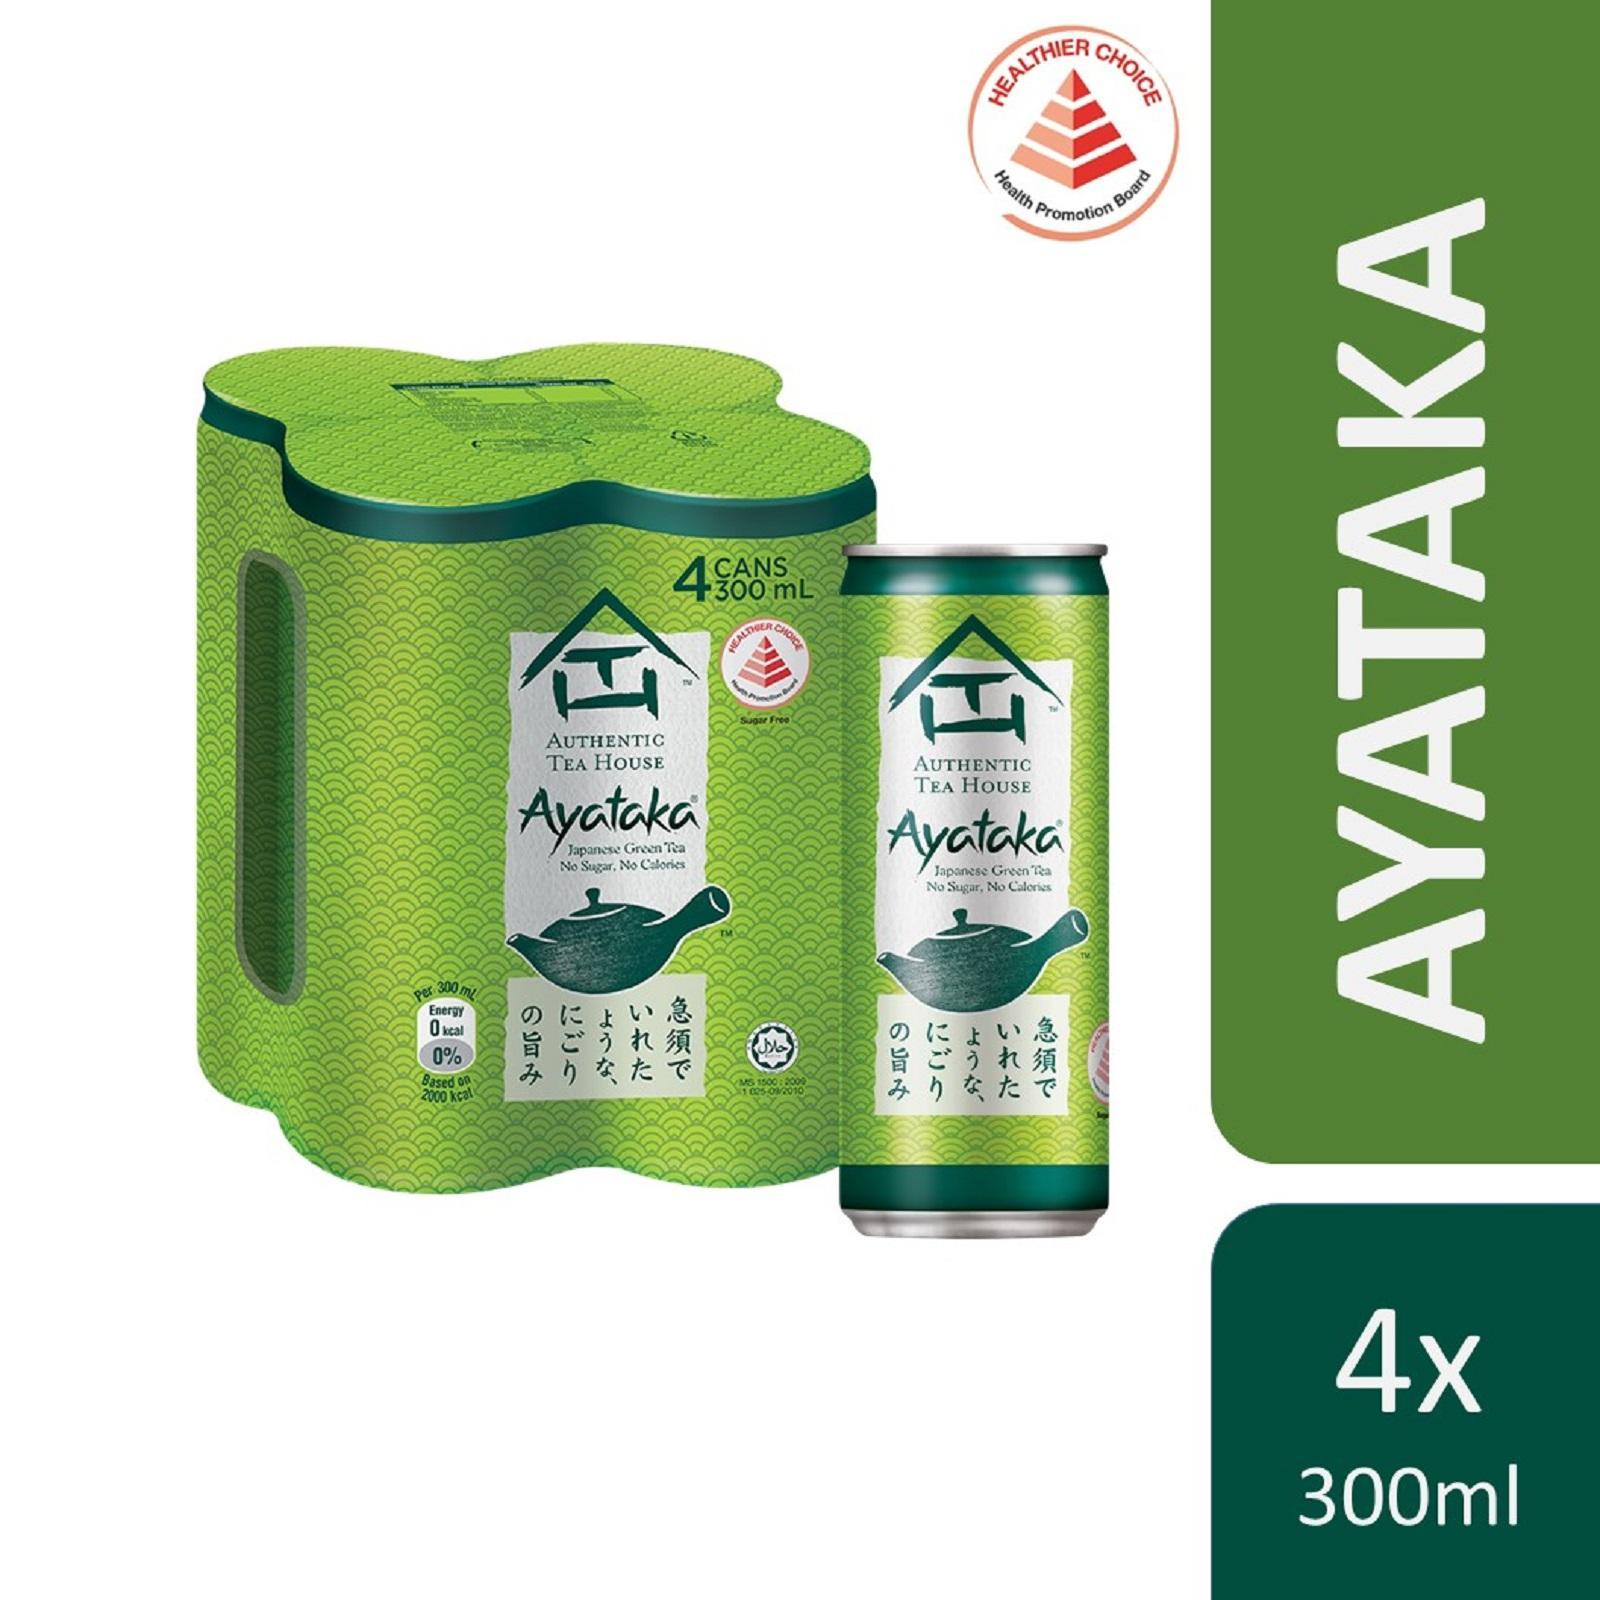 Authentic Tea House Ayataka No Sugar Japanese Green Tea (4 x 300ml)